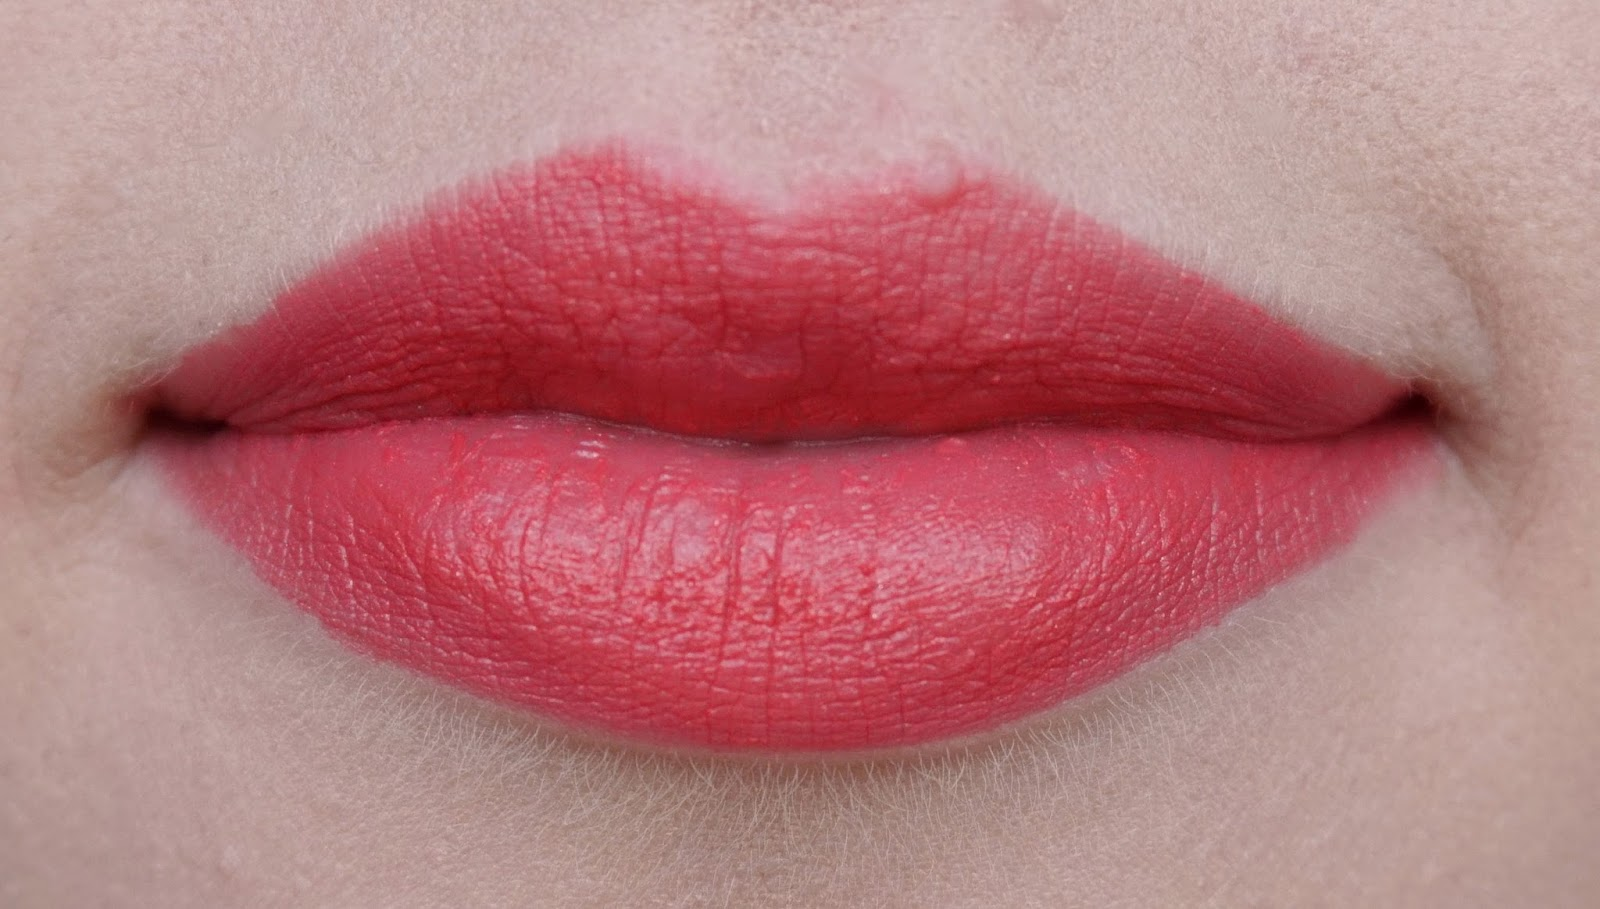 charlotte tilbury hot lips lipstick secret salma kim k.w. miranda may review swatches look miranda may 2 lip swatch